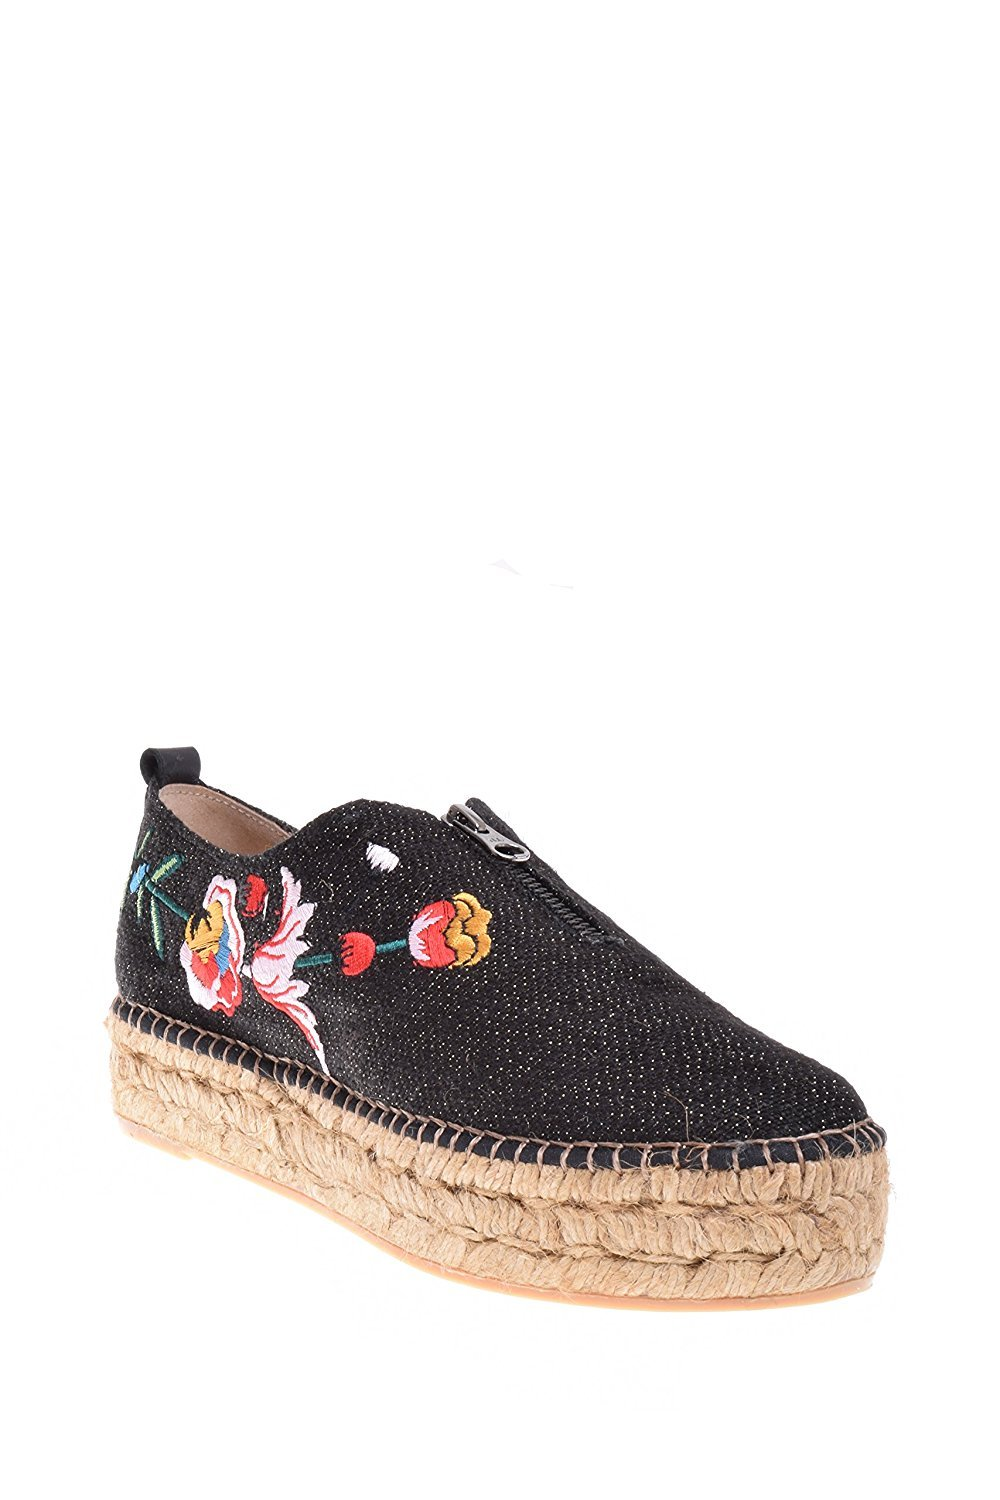 Eric Michael Serena Women's Zipper Slip ONS, Black Embroidered, 40